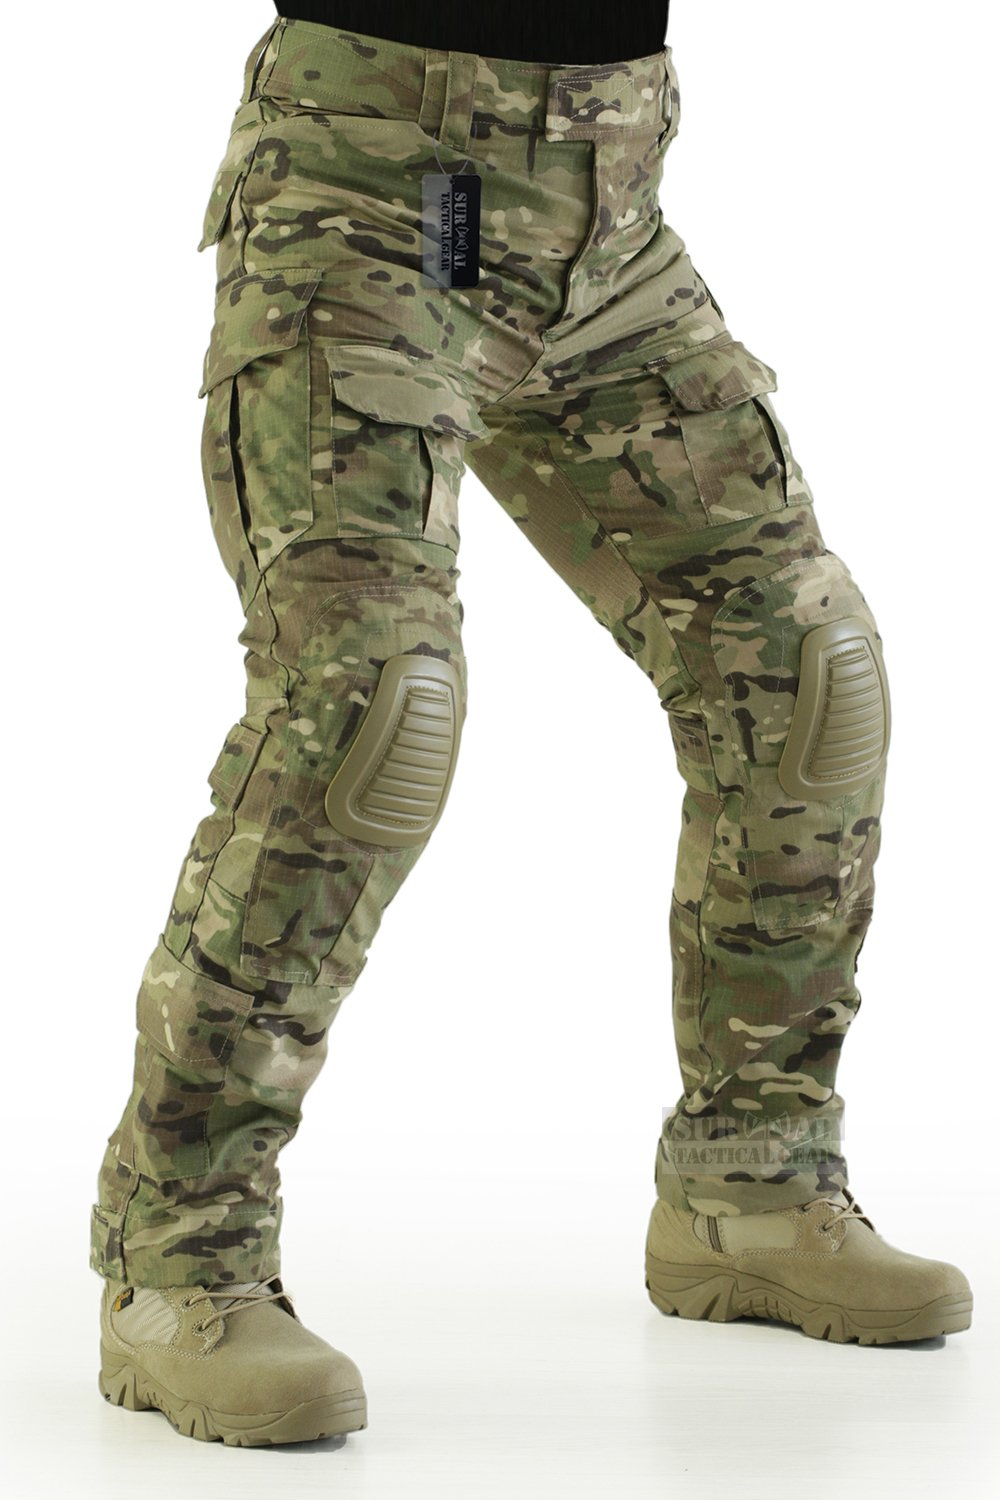 ZAPT Tactical Pants with Knee Pads Airsoft Camping Hiking Hunting BDU Ripstop Combat Pants 13 Kinds Army Camo Uniform Military Trousers (Multicam, L36) by ZAPT